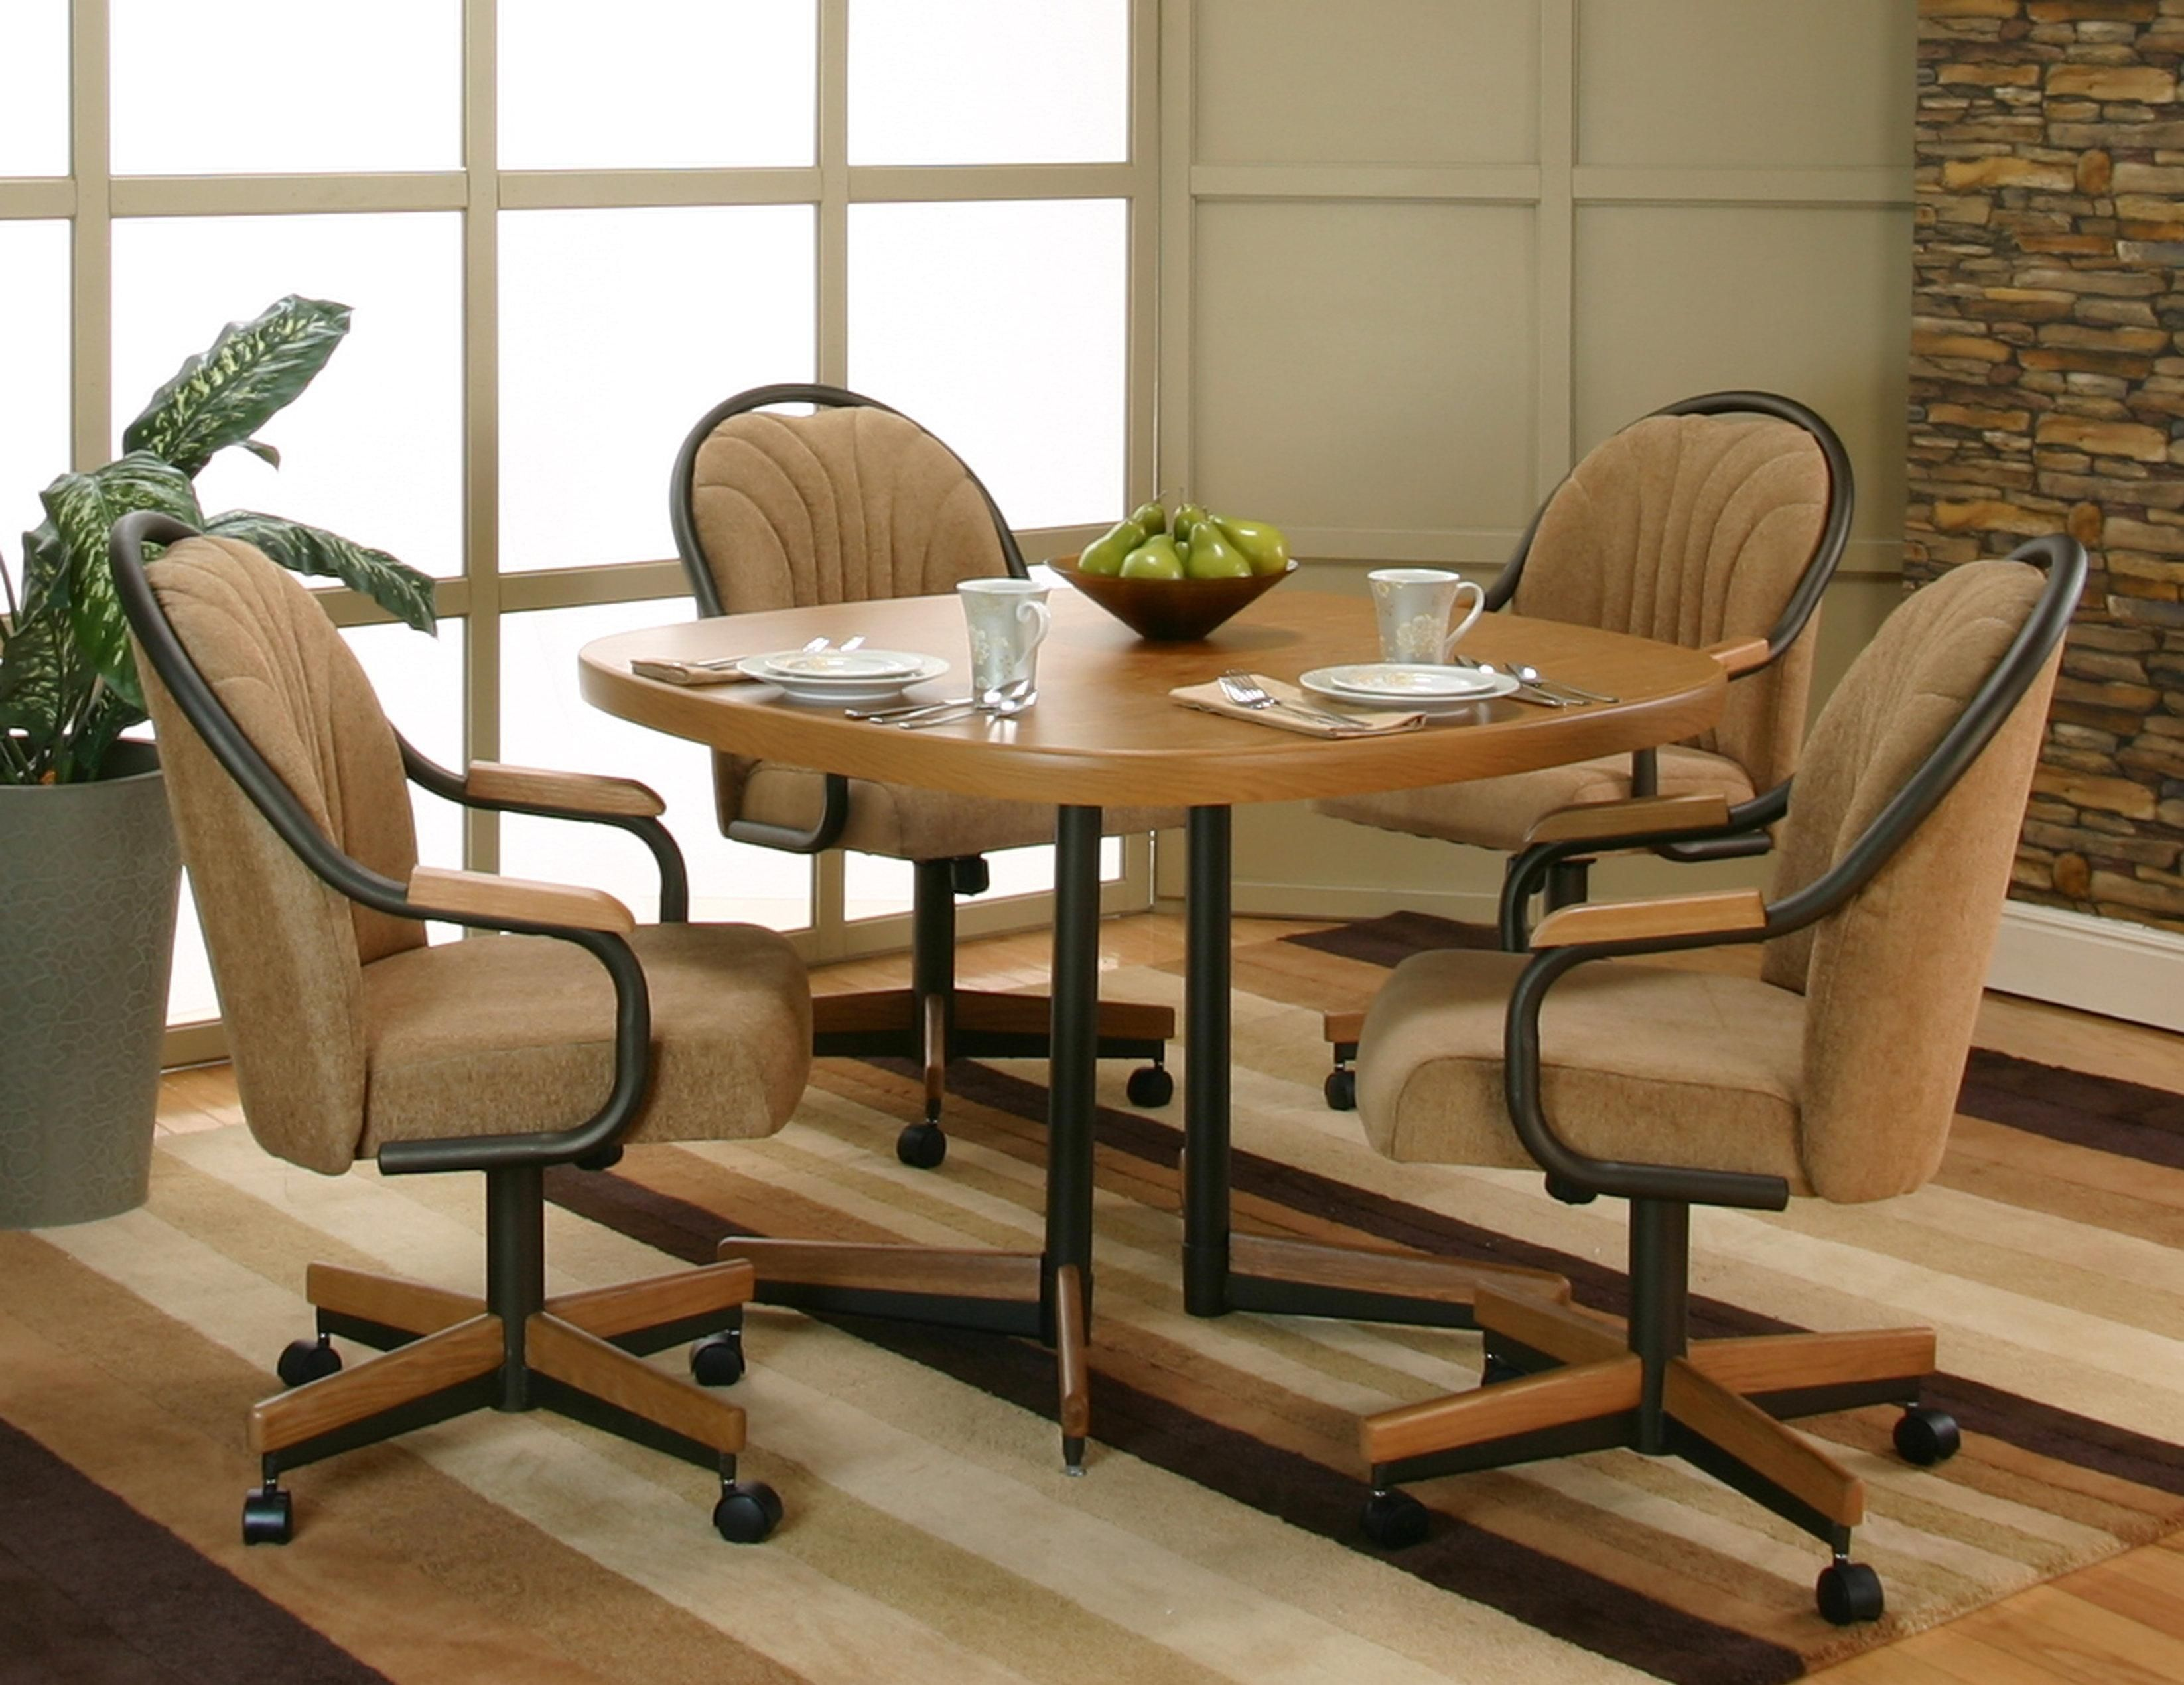 Kitchen Swivel Chairs Upholstered Dining Room Chairs Dining